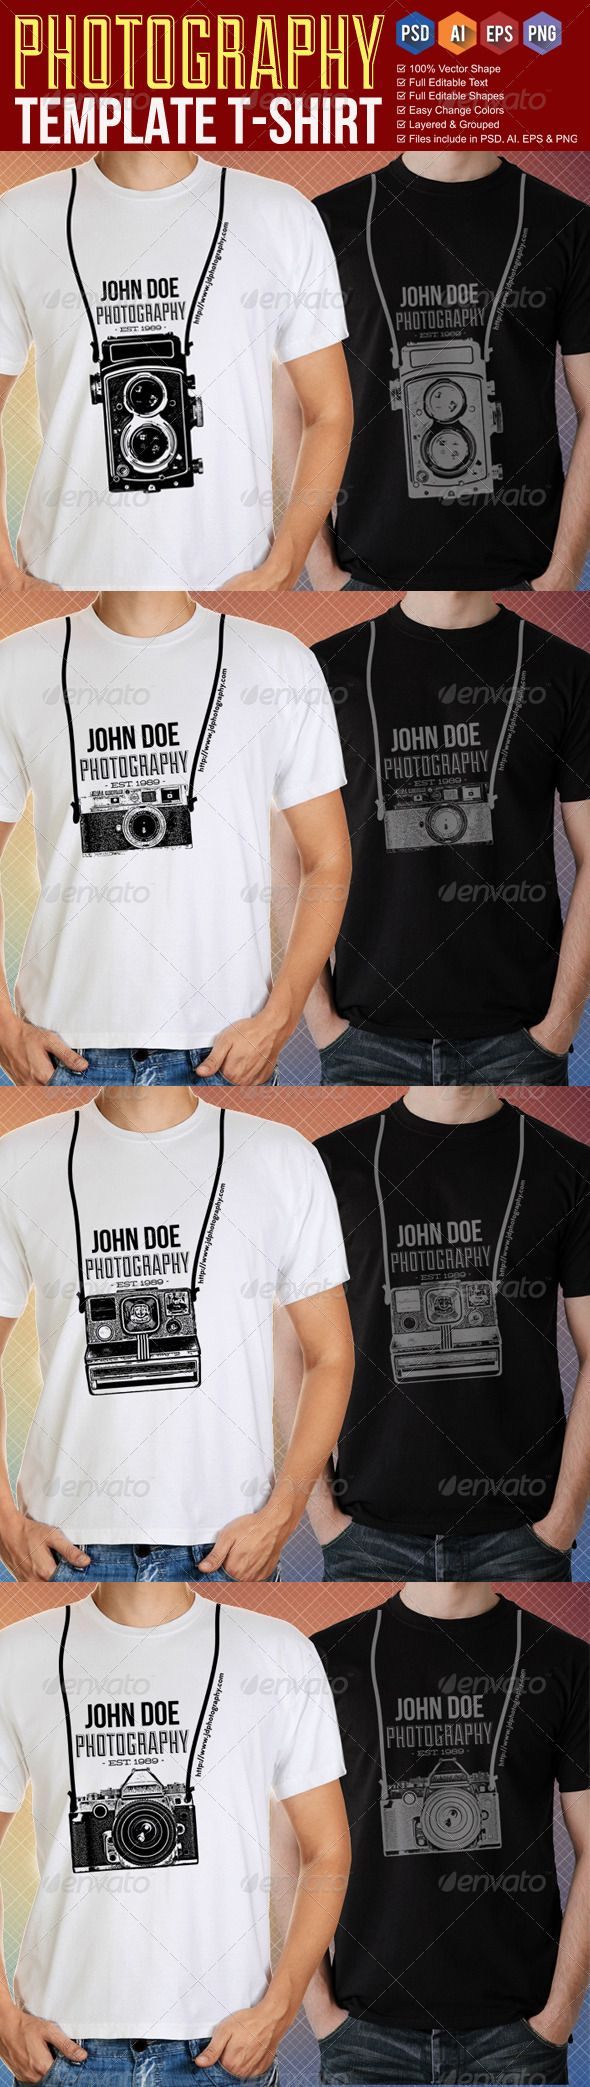 Download Graphic Logo Templates Epublishing Web Elements Vectors Photography T Shirt Templates Shirt Template Shirt Print Design Tshirt Photography